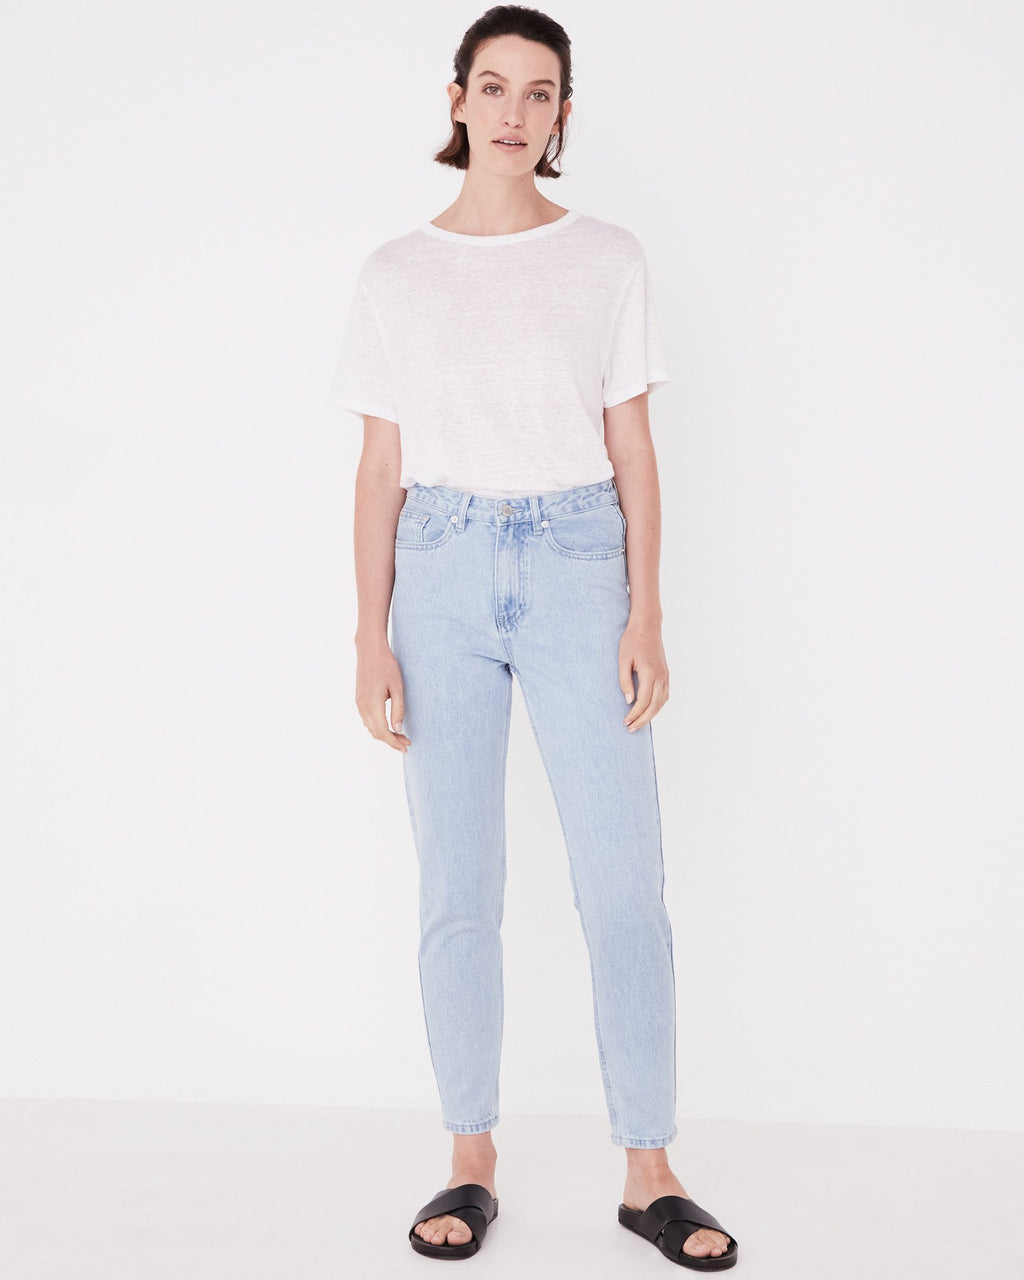 Assembly Label - High Waist Rigid Jean | Pacific Blue